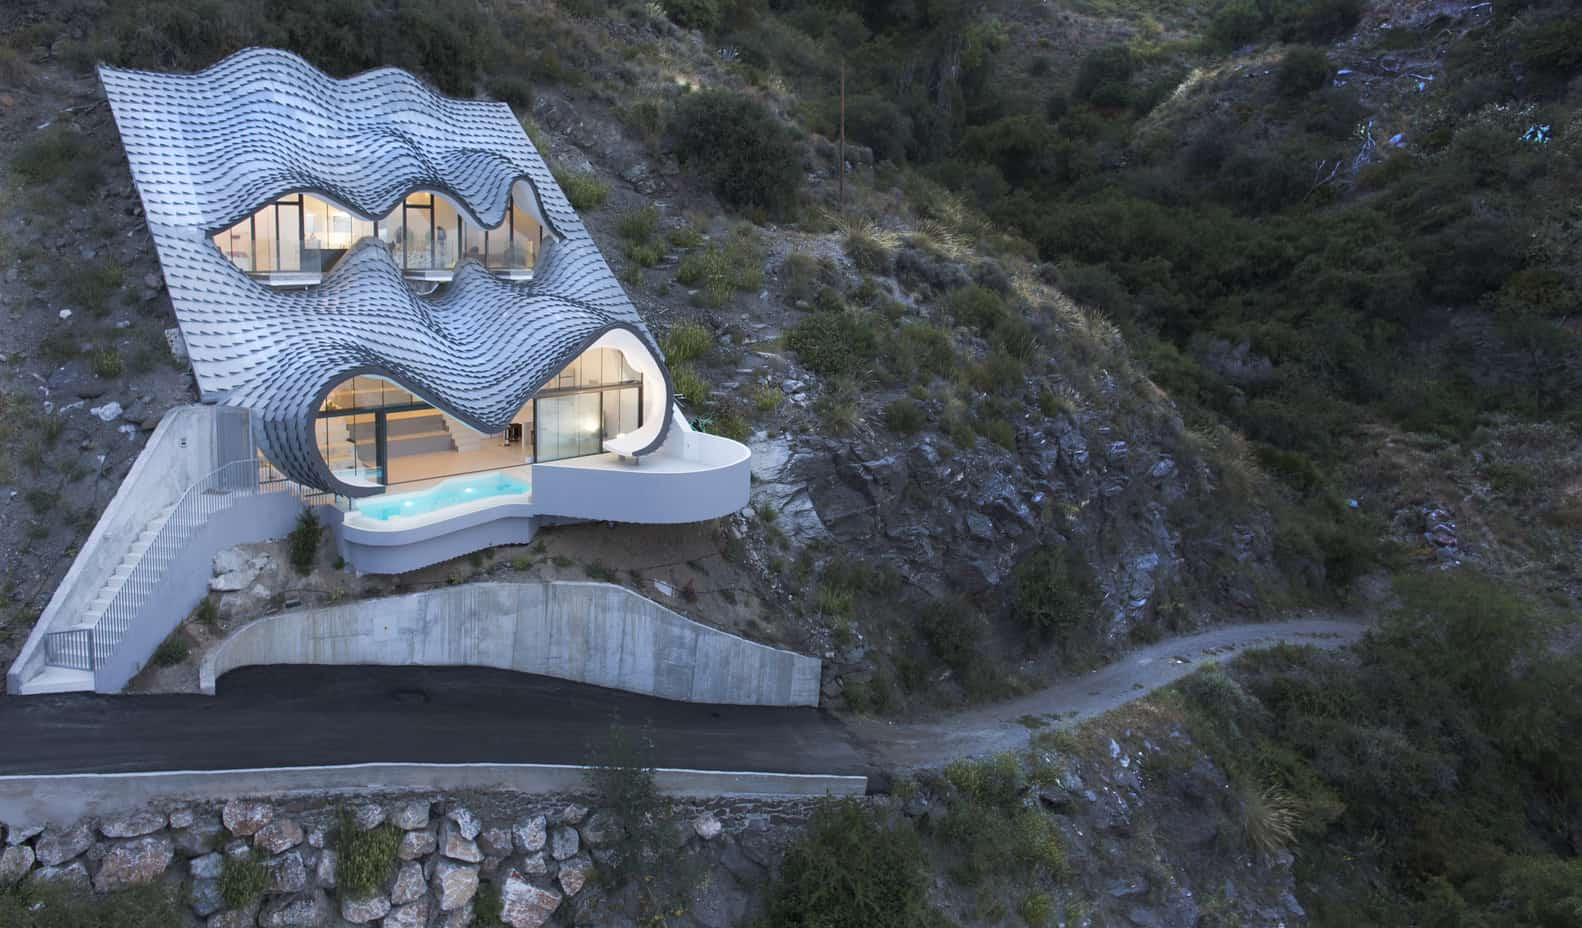 Modern House Designs All Over the World on energy efficient house plans, charleston house plans, simple house plans, craftsman house plans, traditional house plans, southwest house plans, bungalow house plans, one story house plans, open small house plans, old new orleans house plans, country house plans, european house plans, seaside house plans, 25' wide house plans, luxury house plans, cottage house plans, colonial house plans, mediterranean house plans, townhouse house plans,